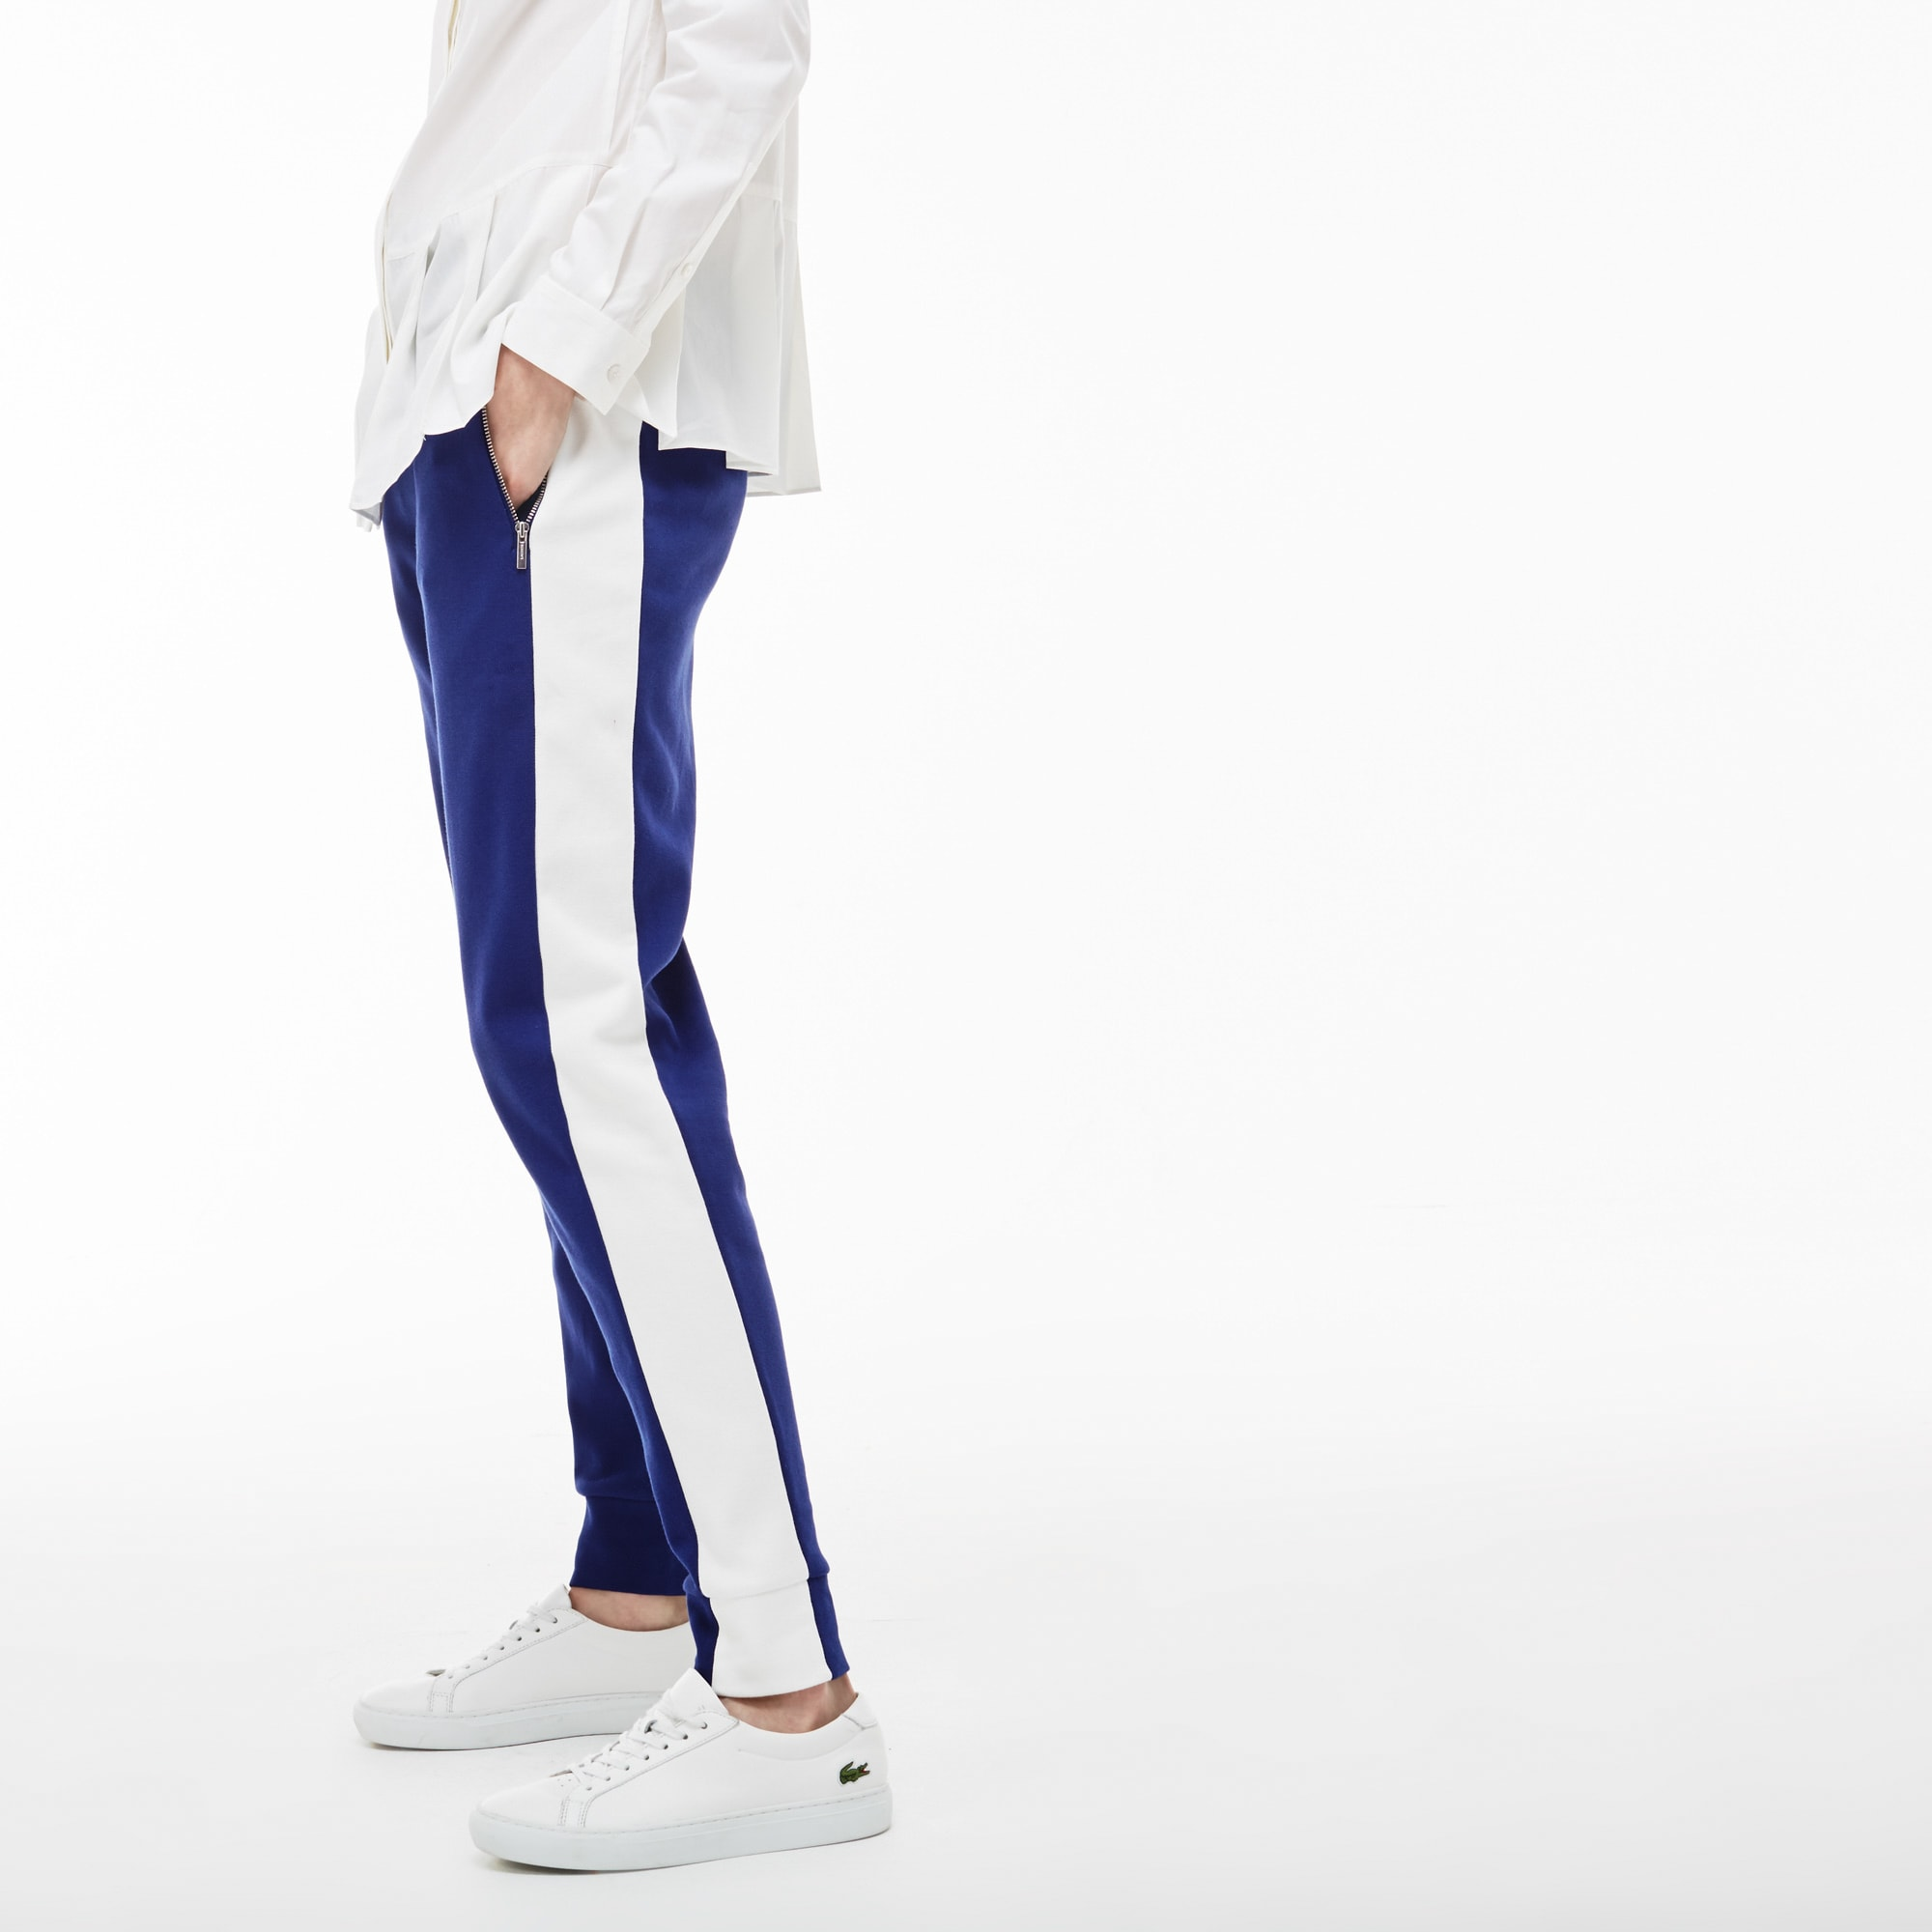 Women's Contrast Band Interlock Jogging Pants